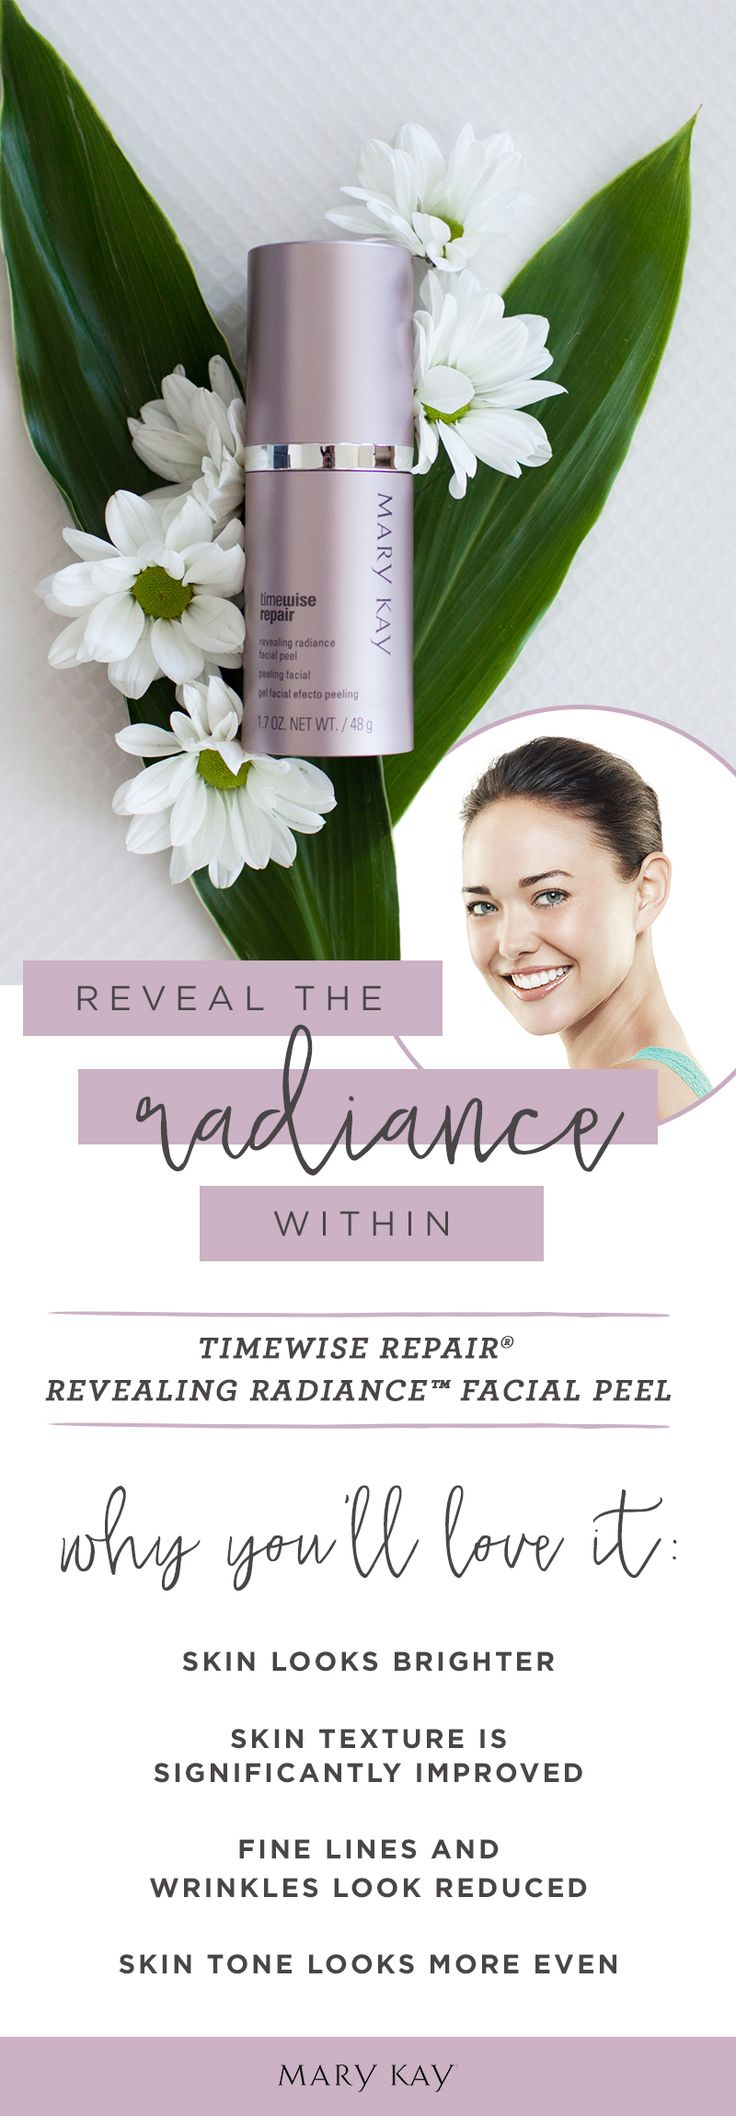 Wondering how to use the new TimeWise Repair® Revealing Radiance™ Facial Peel? It only takes 3 simple steps, twice a week, allowing three days between application!  1.Thoroughly cleanse and dry skin.  2. Apply a thin layer of Revealing Radiance™ Facial Peel on the face, avoiding the eye area, and massage gently into the skin.  3. After 10 minutes, rinse skin thoroughly with warm water and pat dry.